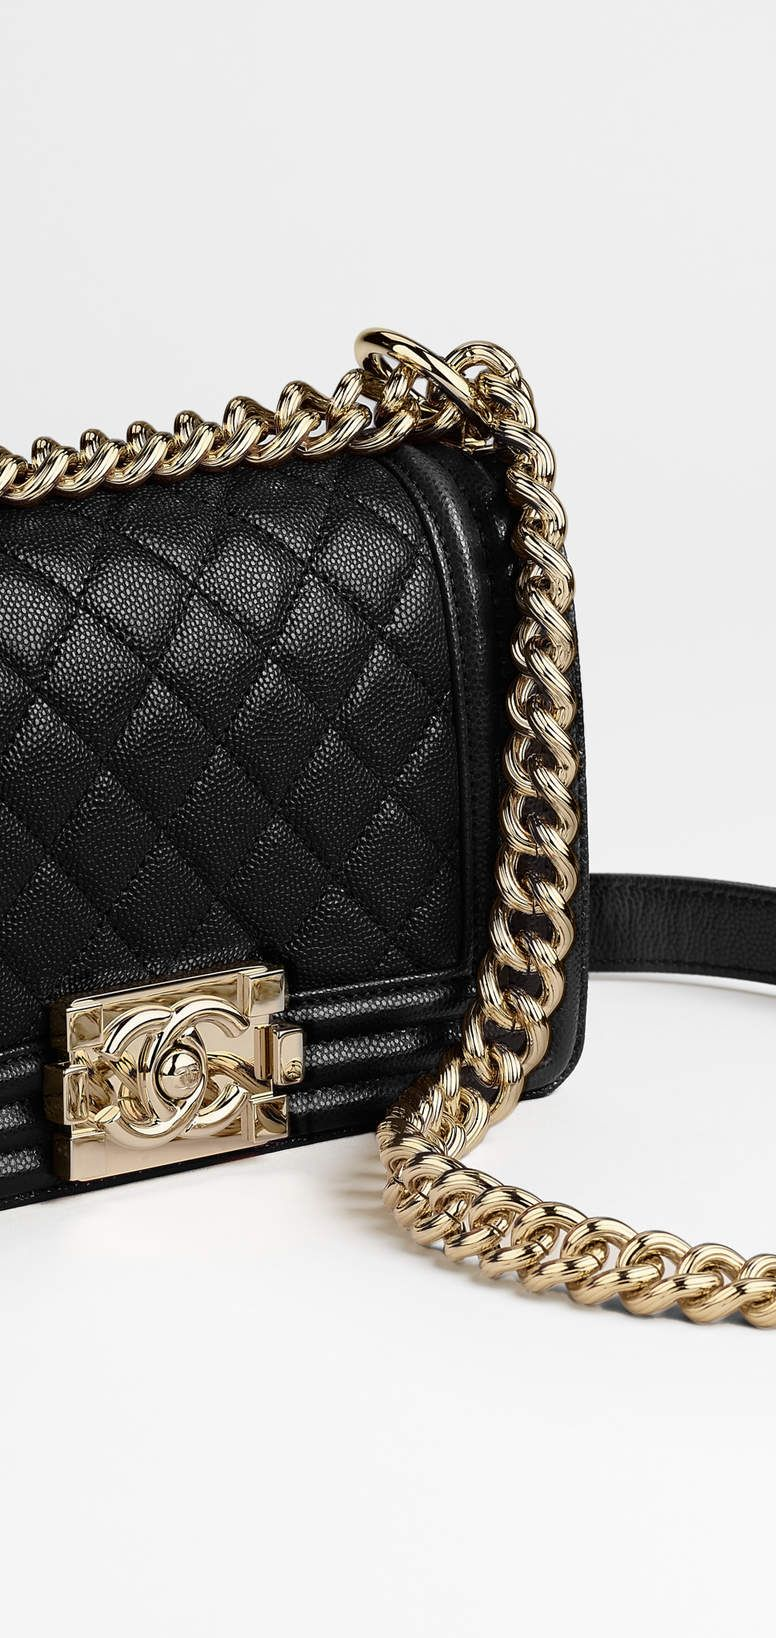 0edd1c1325be The latest Handbags collections on the CHANEL official website ...